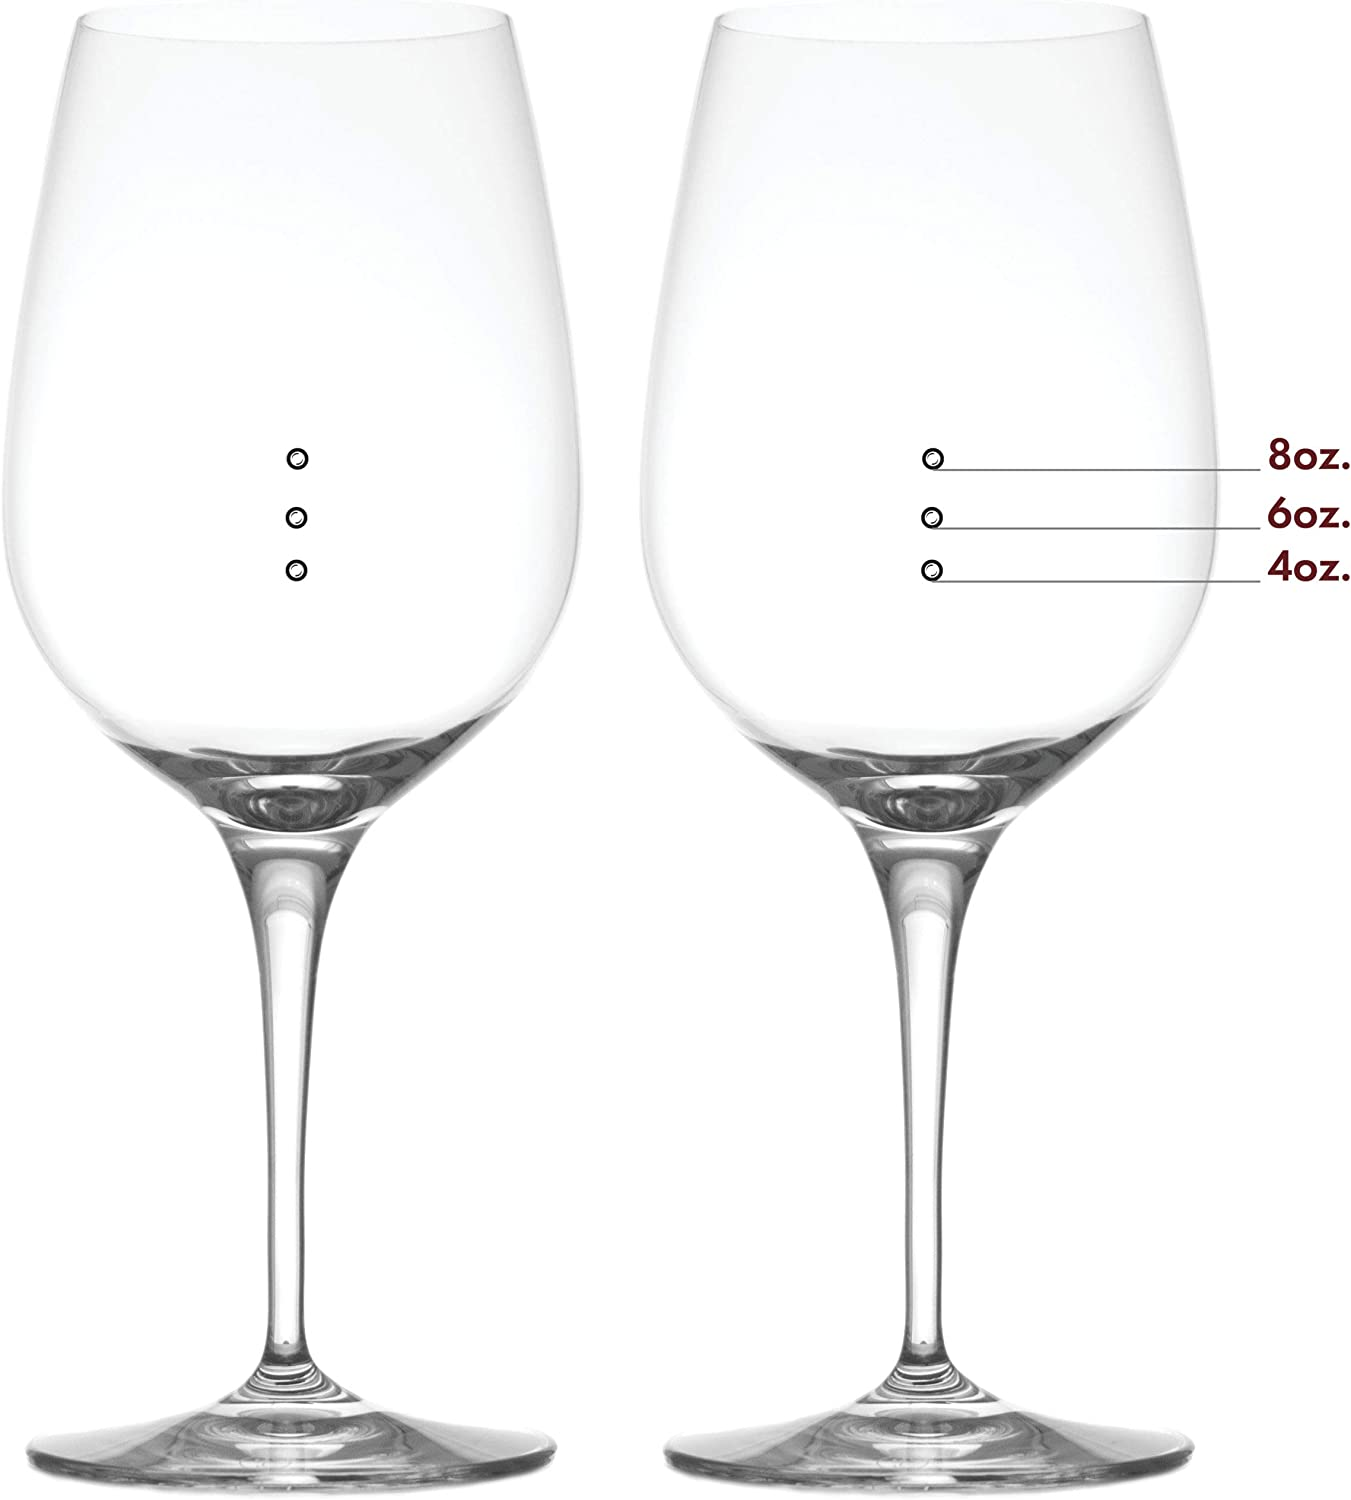 Elegance Xl Frosted Bubbles Measuring Wine Glass With Frosted Wine Measuring Marks Of 4 Oz 6 Oz And 8 Oz Wine Glass Set Of 2 Wine Glasses